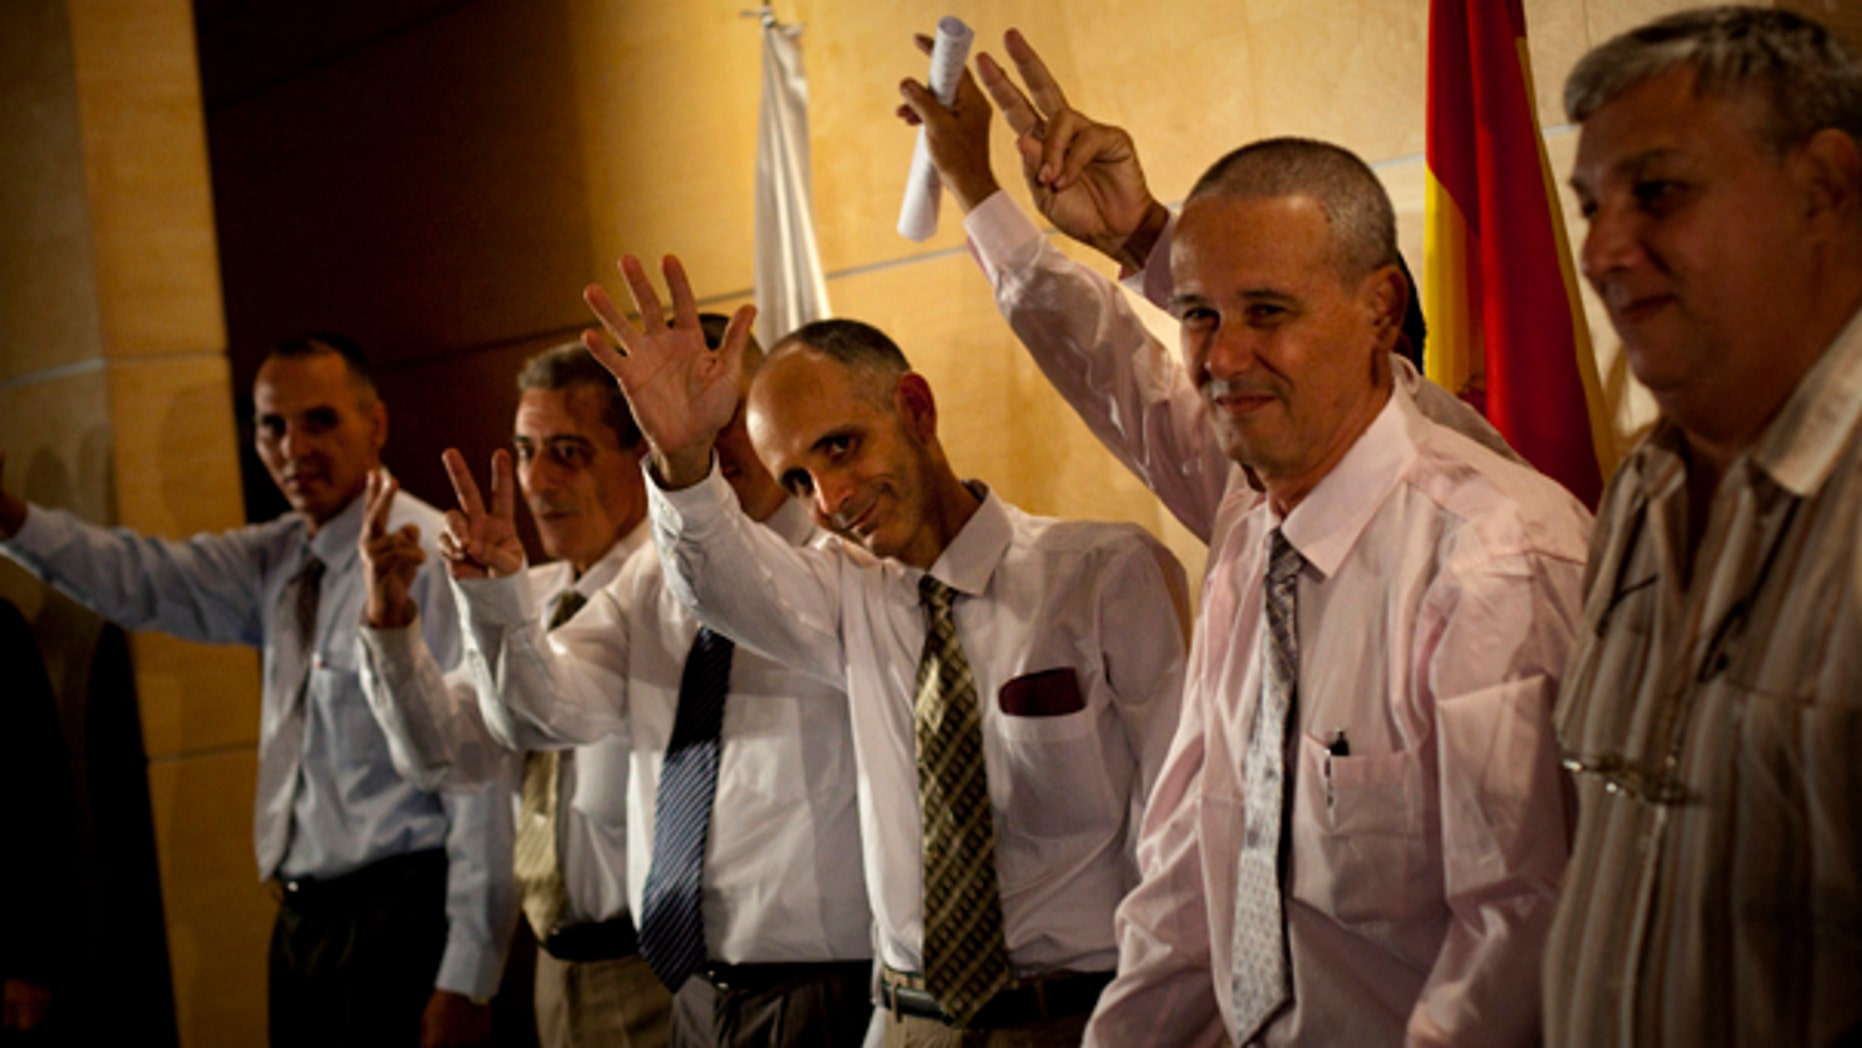 July 13: Cuban dissidents wave for press photographers upon the arrival at Madrid's Barajas airport.  Seven Cuban political prisoners and members of their families arrived in Madrid on Tuesday, the first of a group of inmates the government in Havana has promised to release, an official said. (AP)